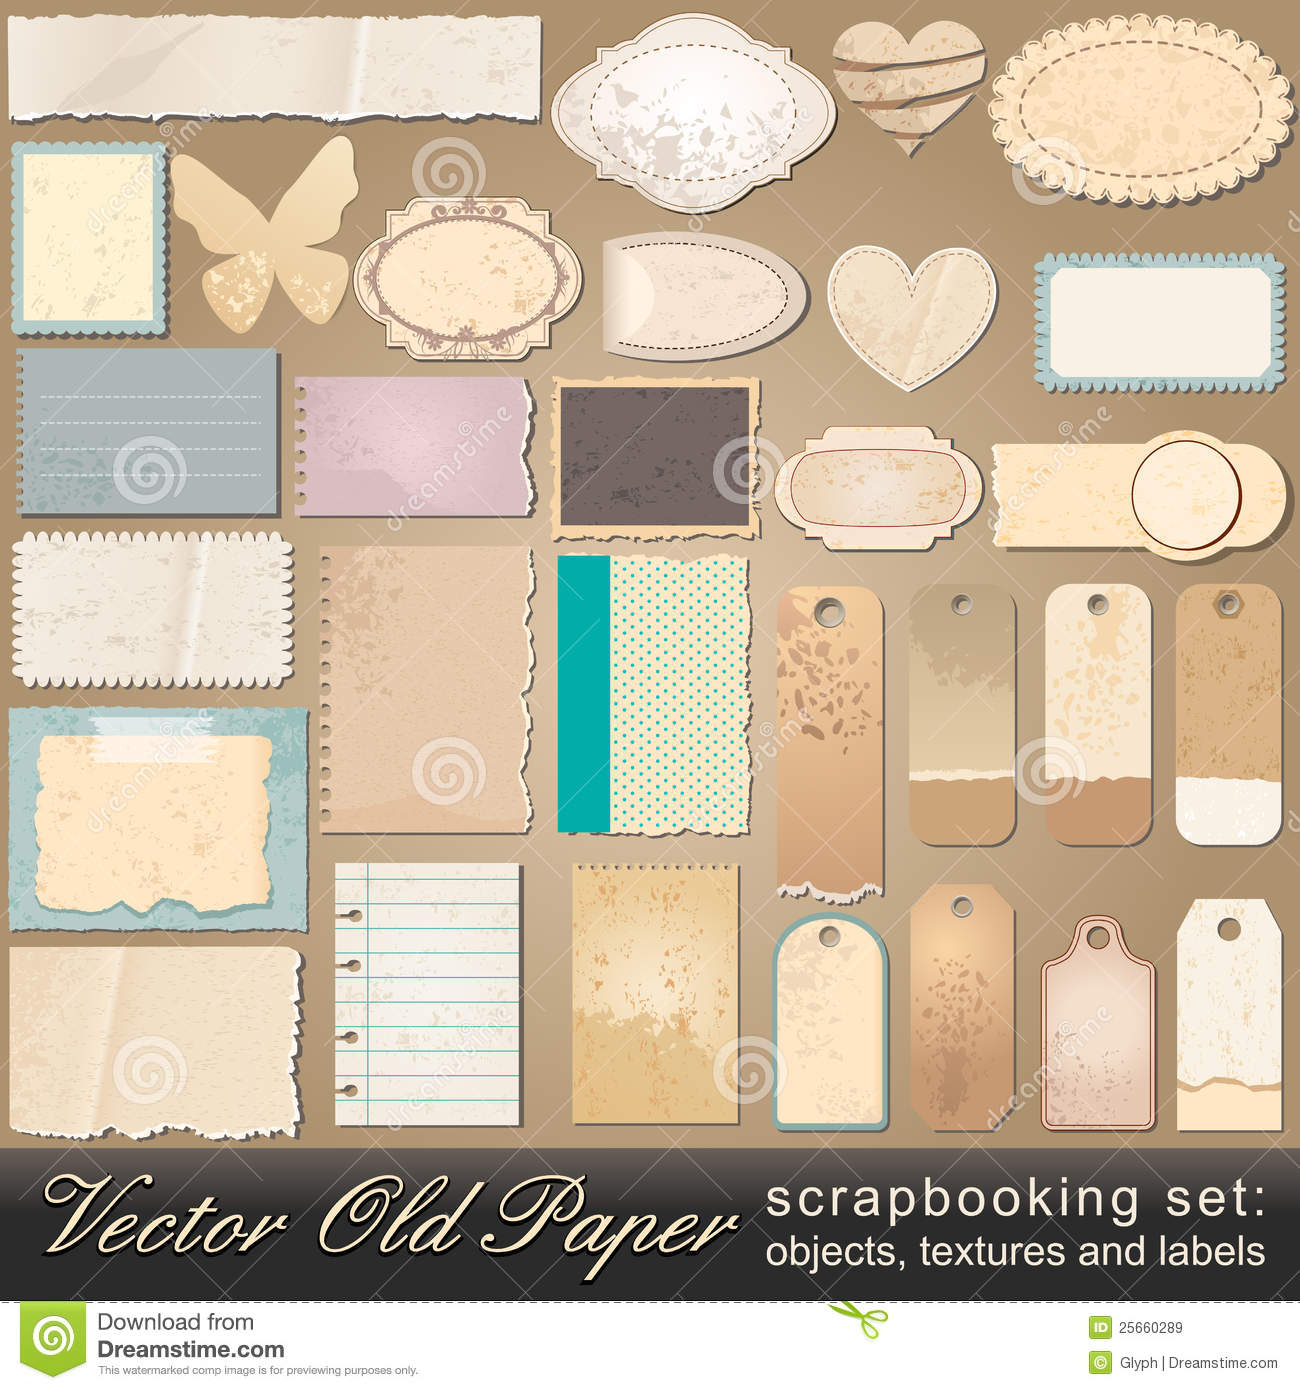 Scrapbooking set of old paper objects